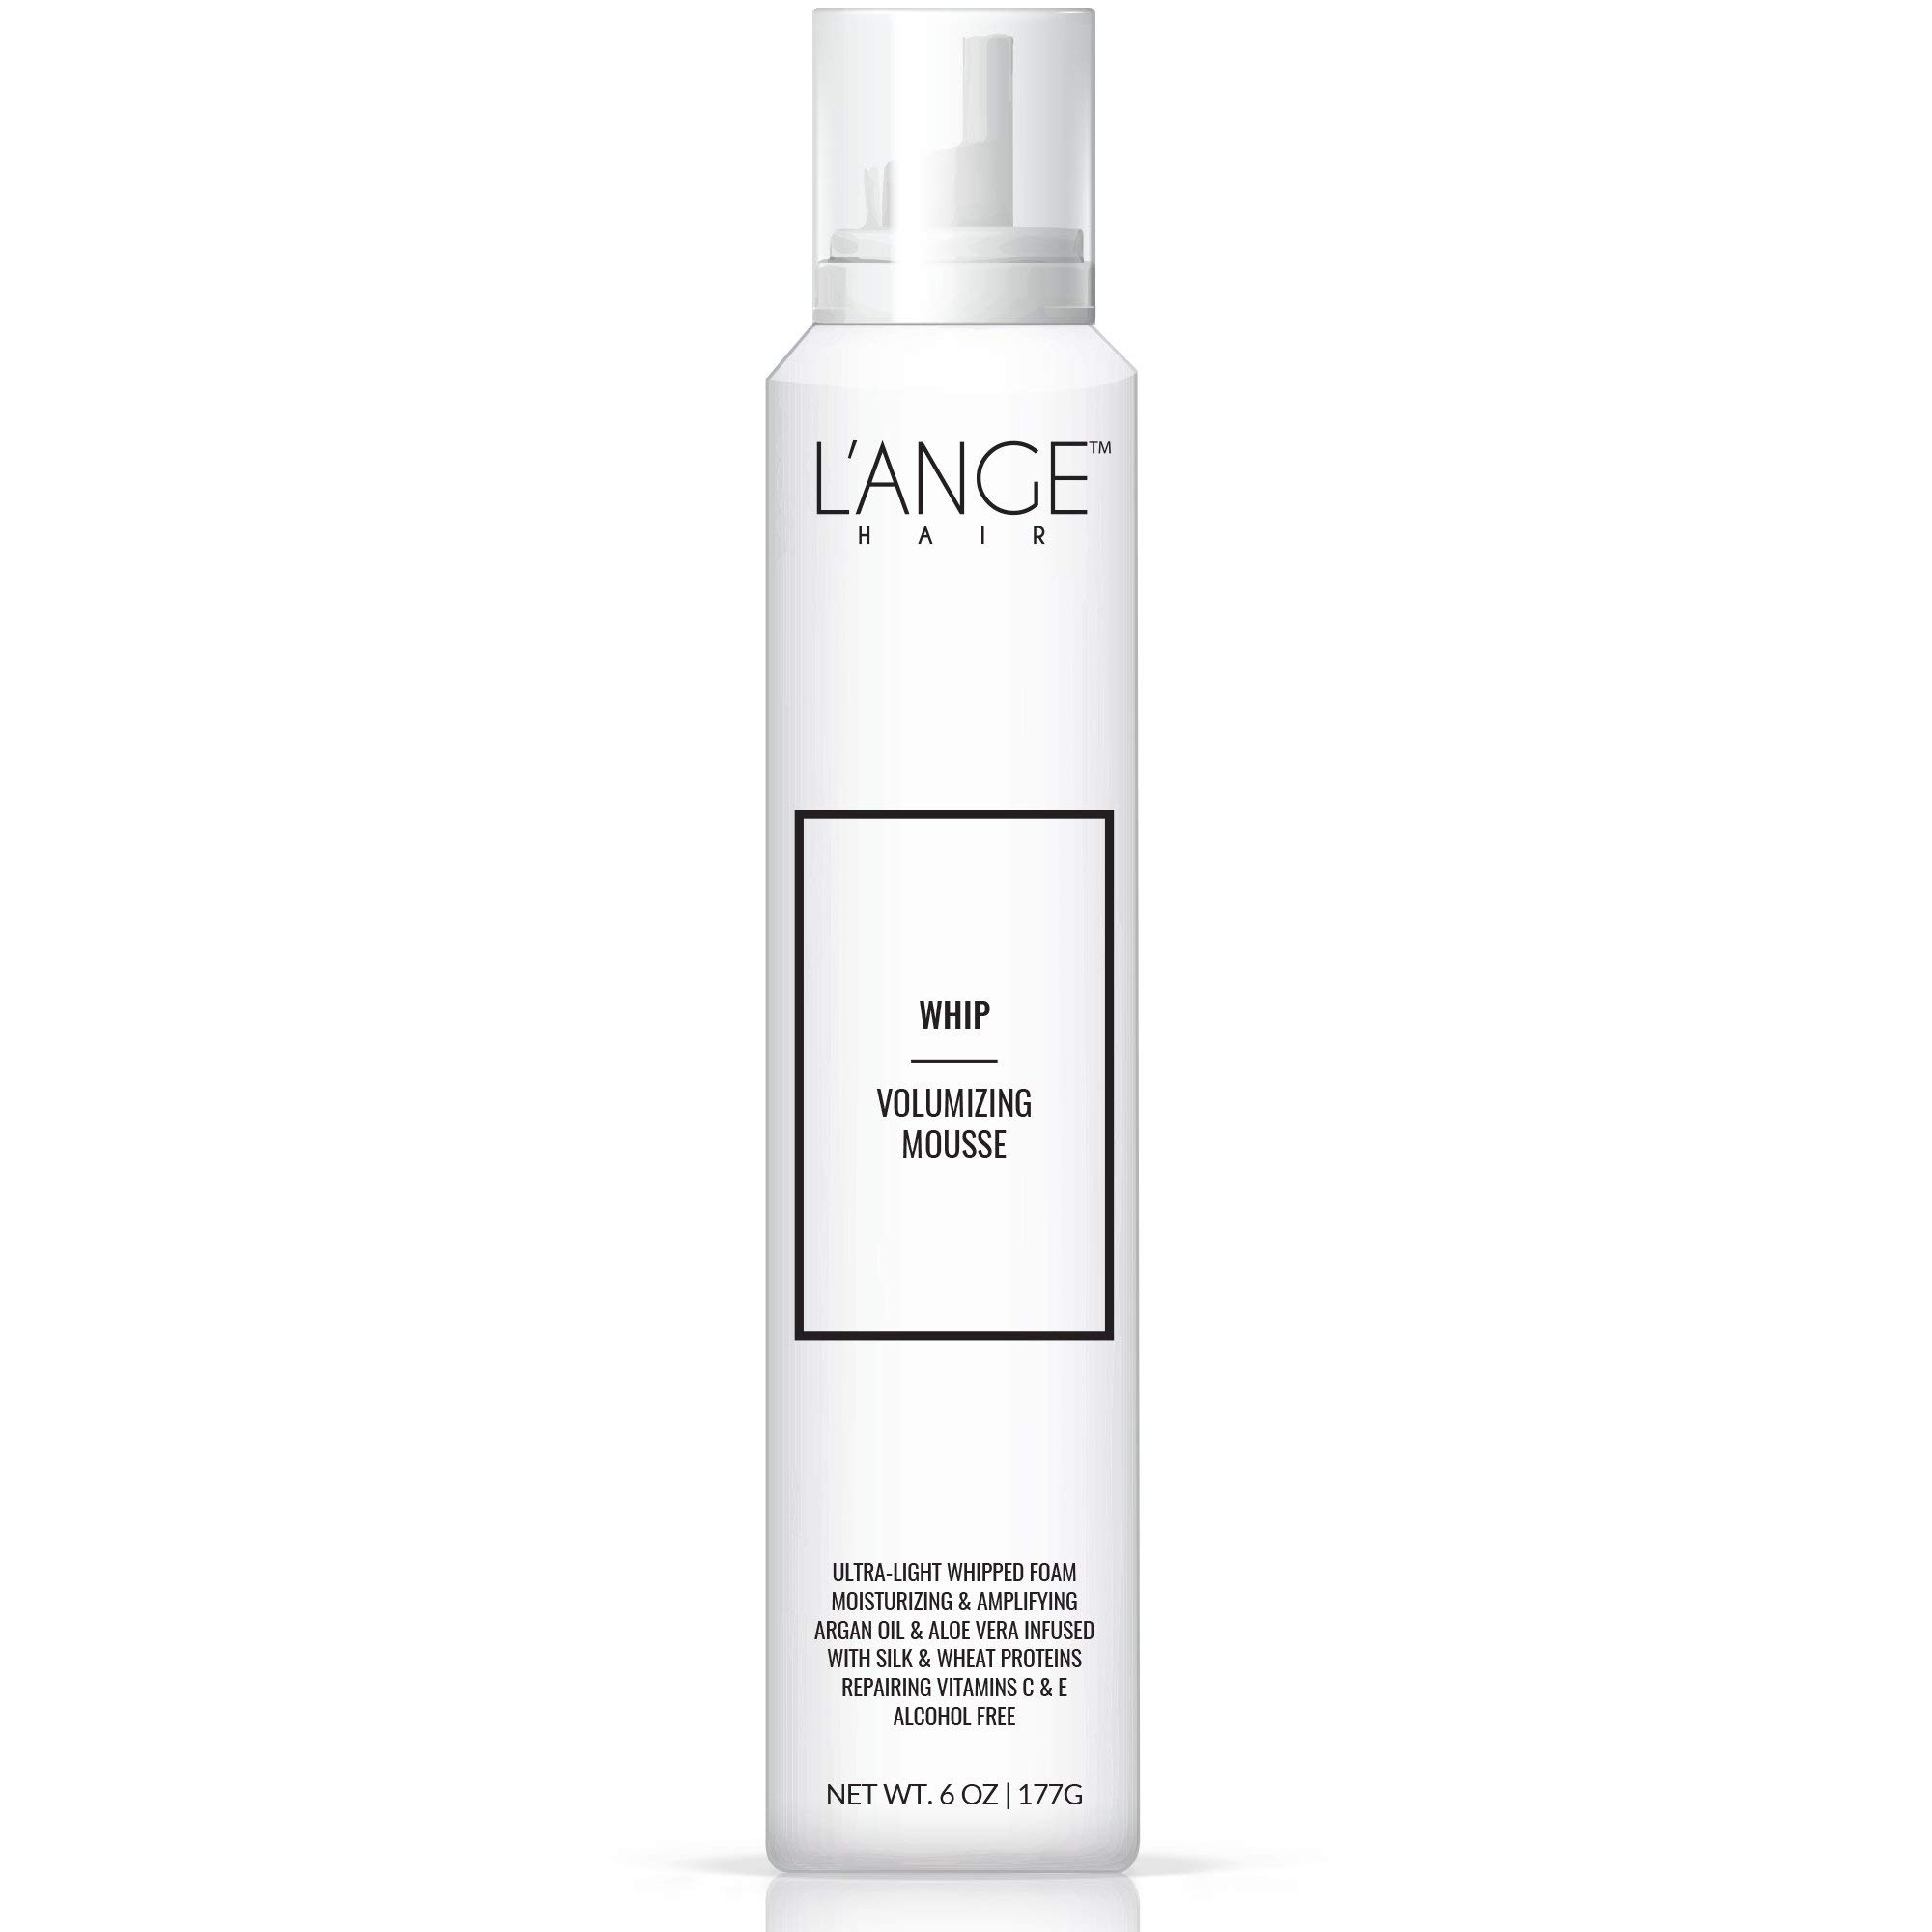 L'ange Hair WHIP Volumizing Mousse - Big Volume Natural Hair Thickening Foam Mousse for Women, Men, Girls with Argan Oil & Aloe Vera, Professional Texture Hair Styling Foaming Mousse - 6 Oz, MSRP $30